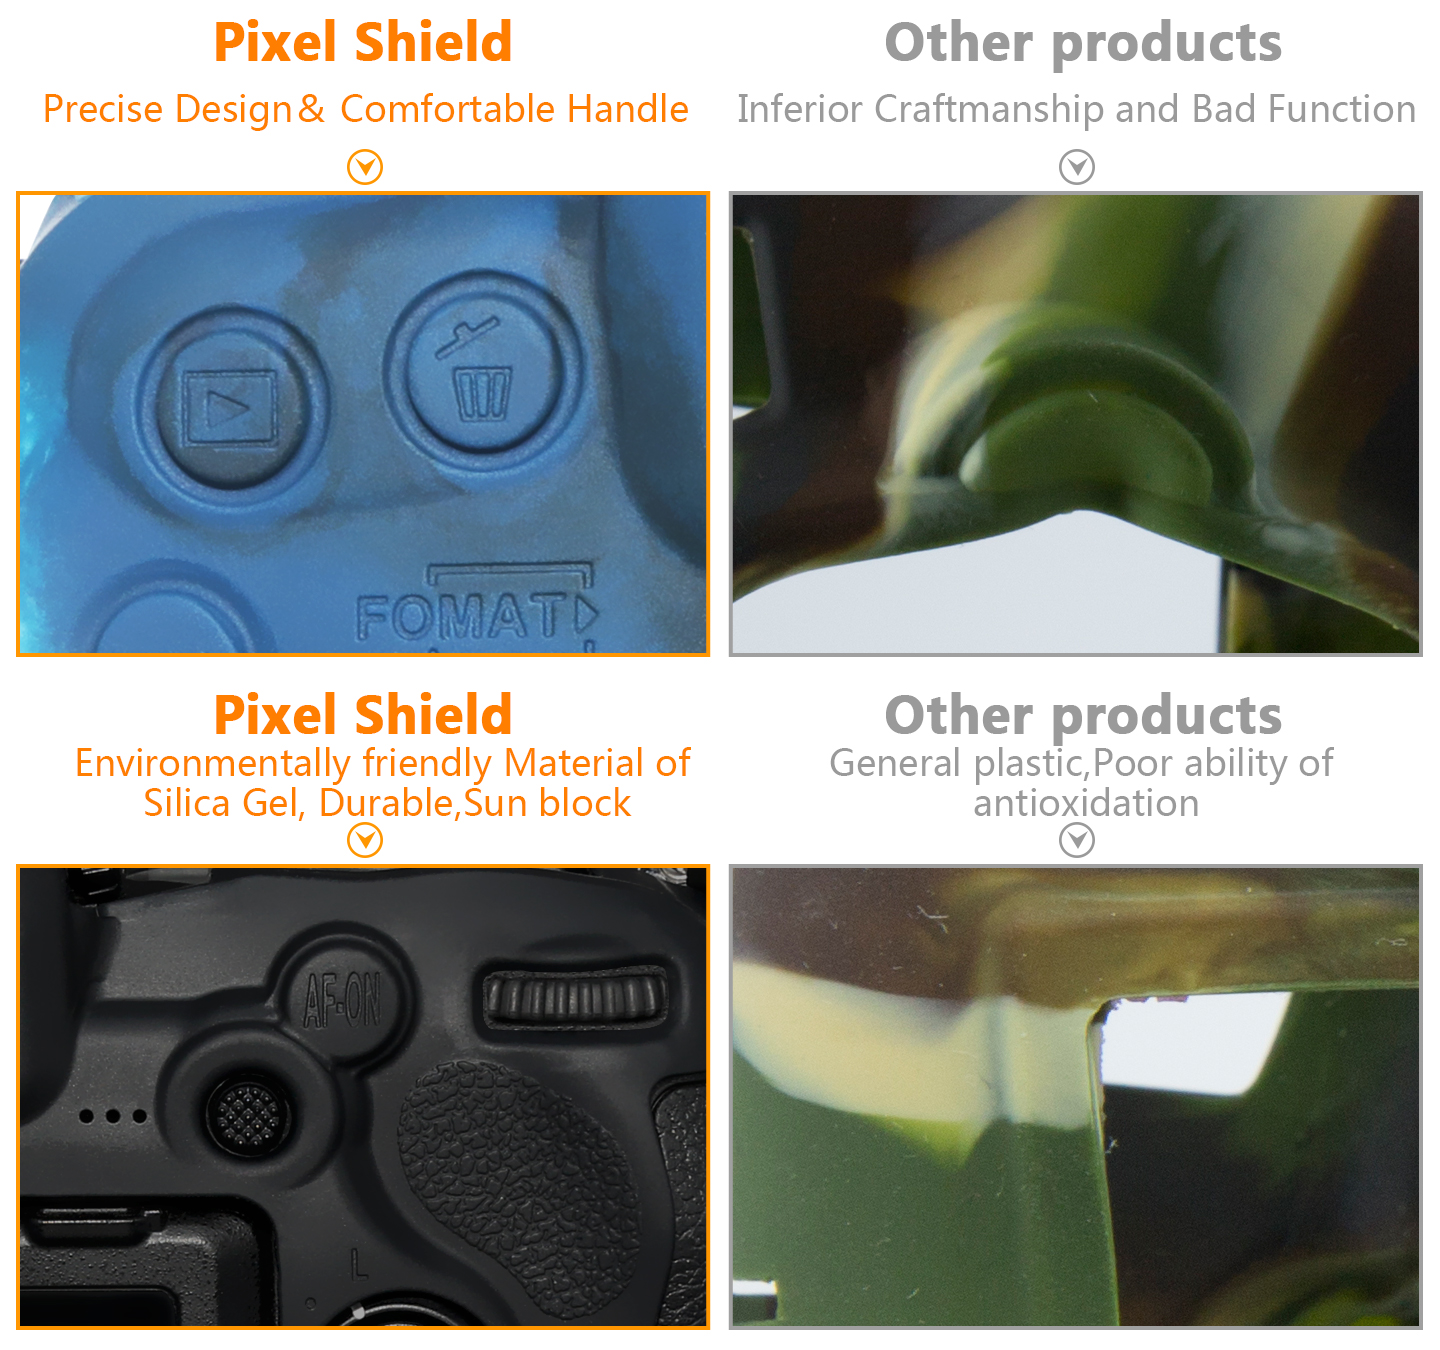 Pixel Shield VS Other products